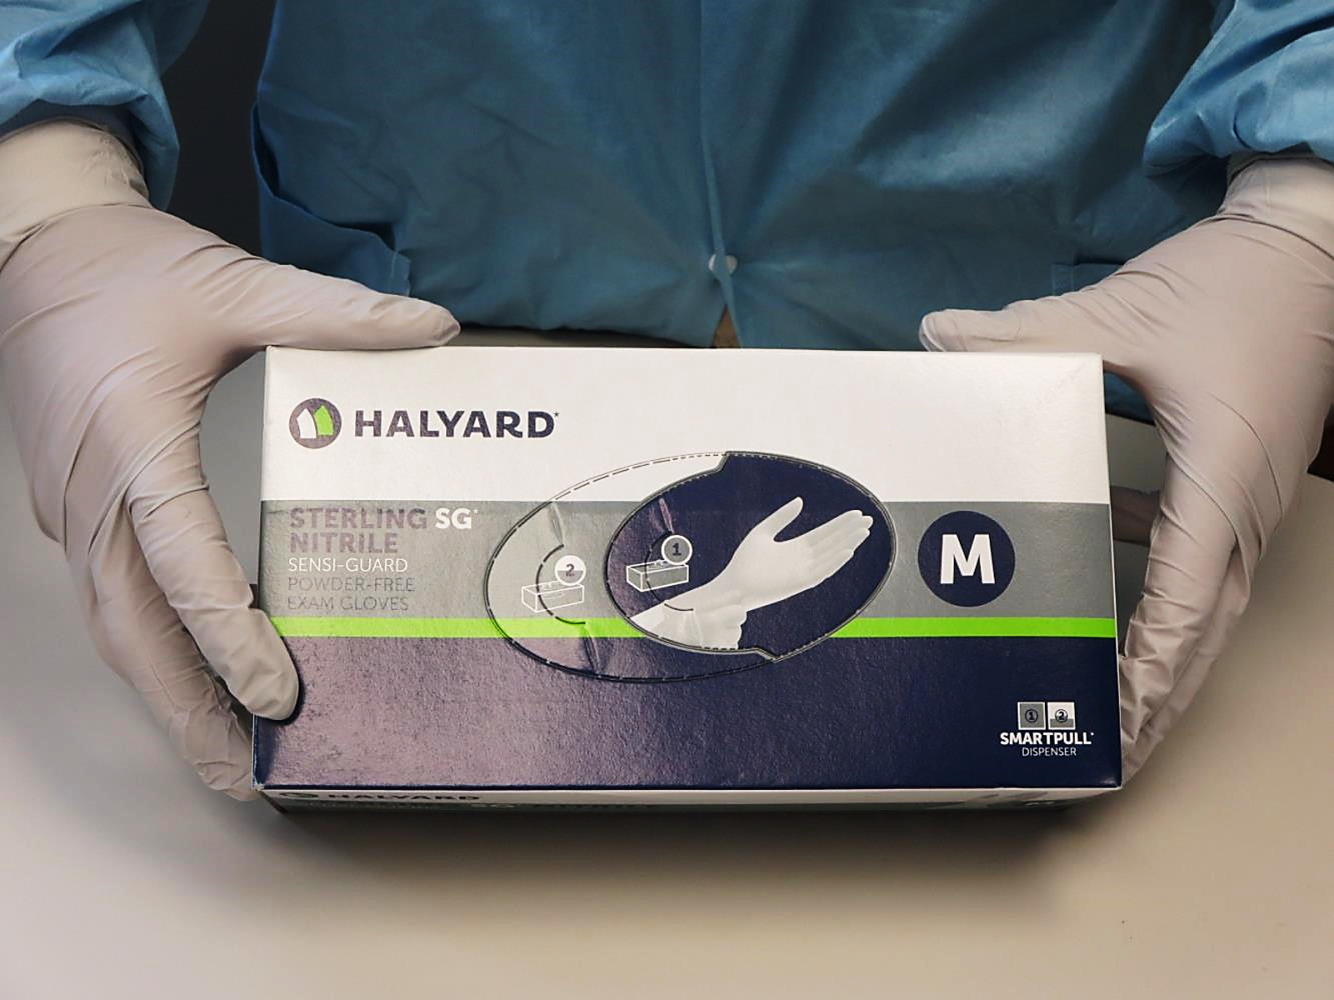 Halyard® Health Sterling SG Sensi-Guard Disposable Powder-Free Latex-Free Nitrile Exam Gloves